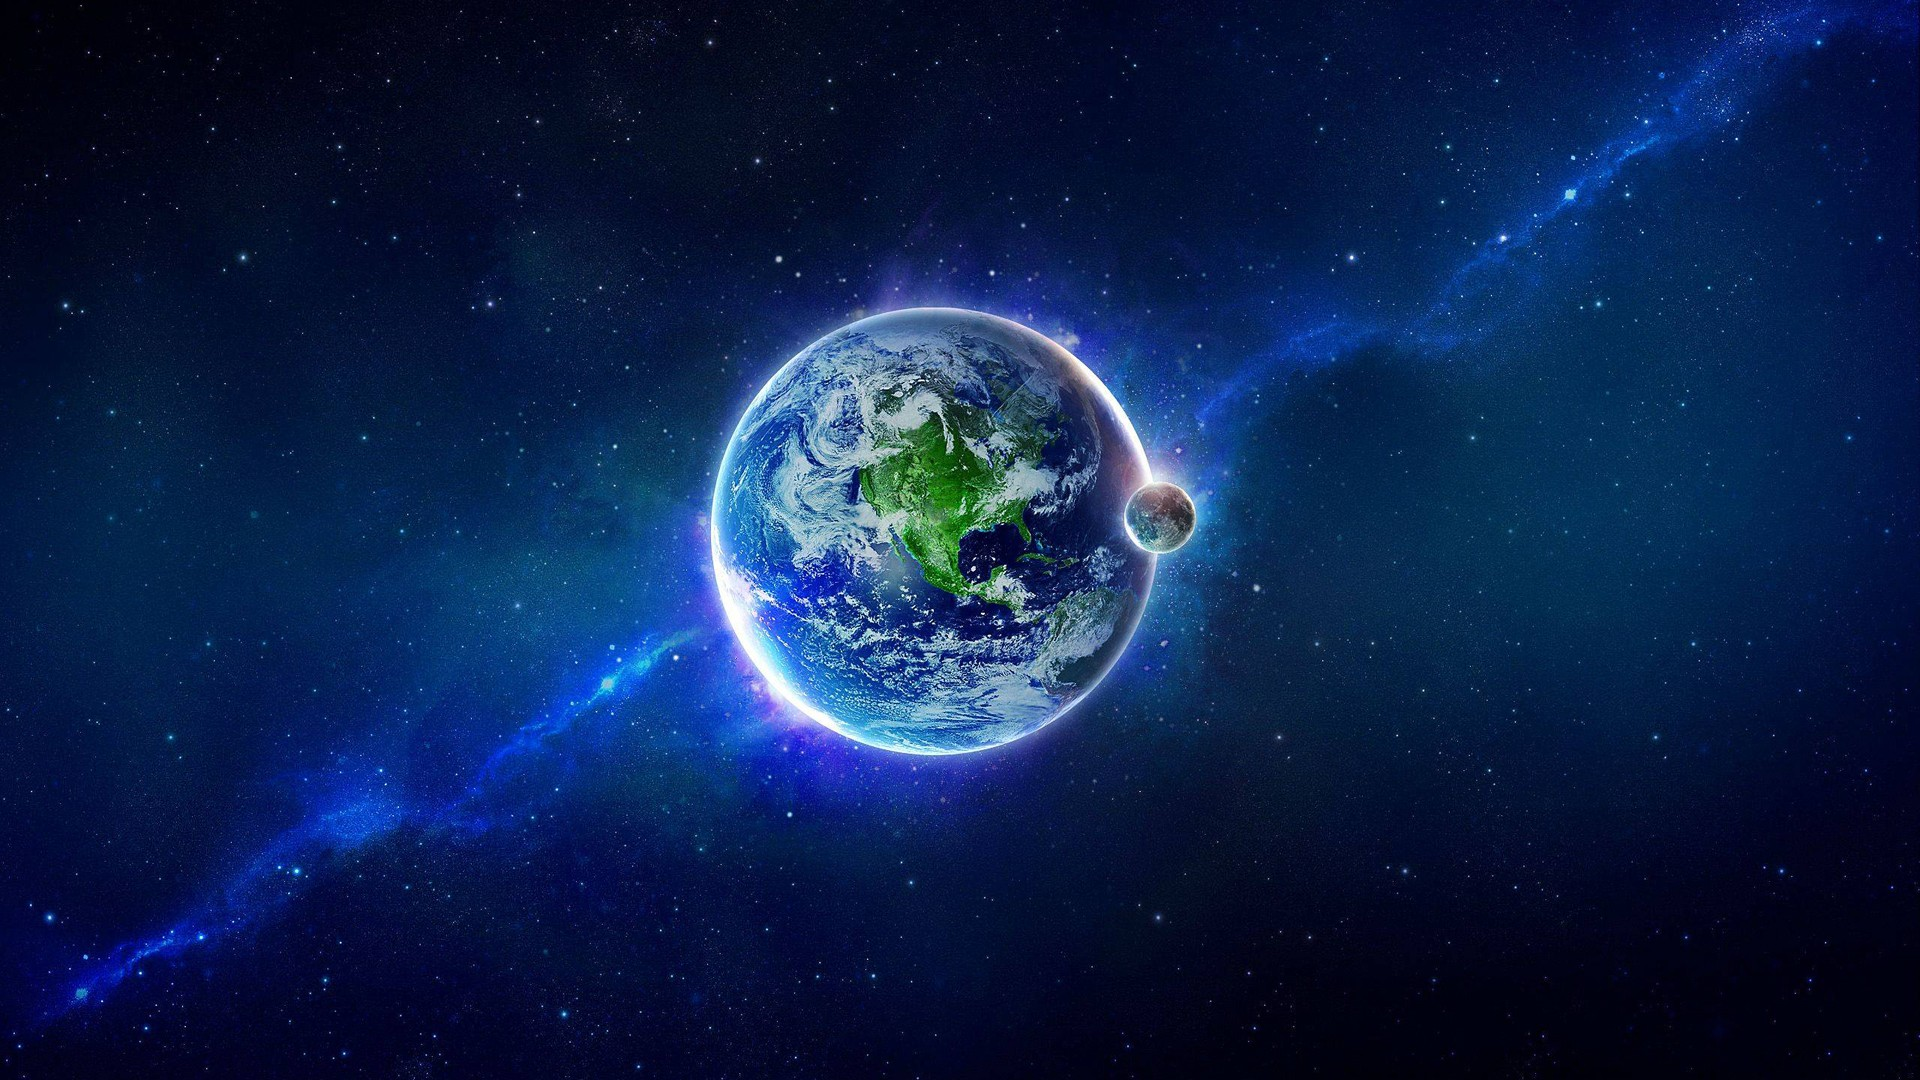 Planet similar to earth